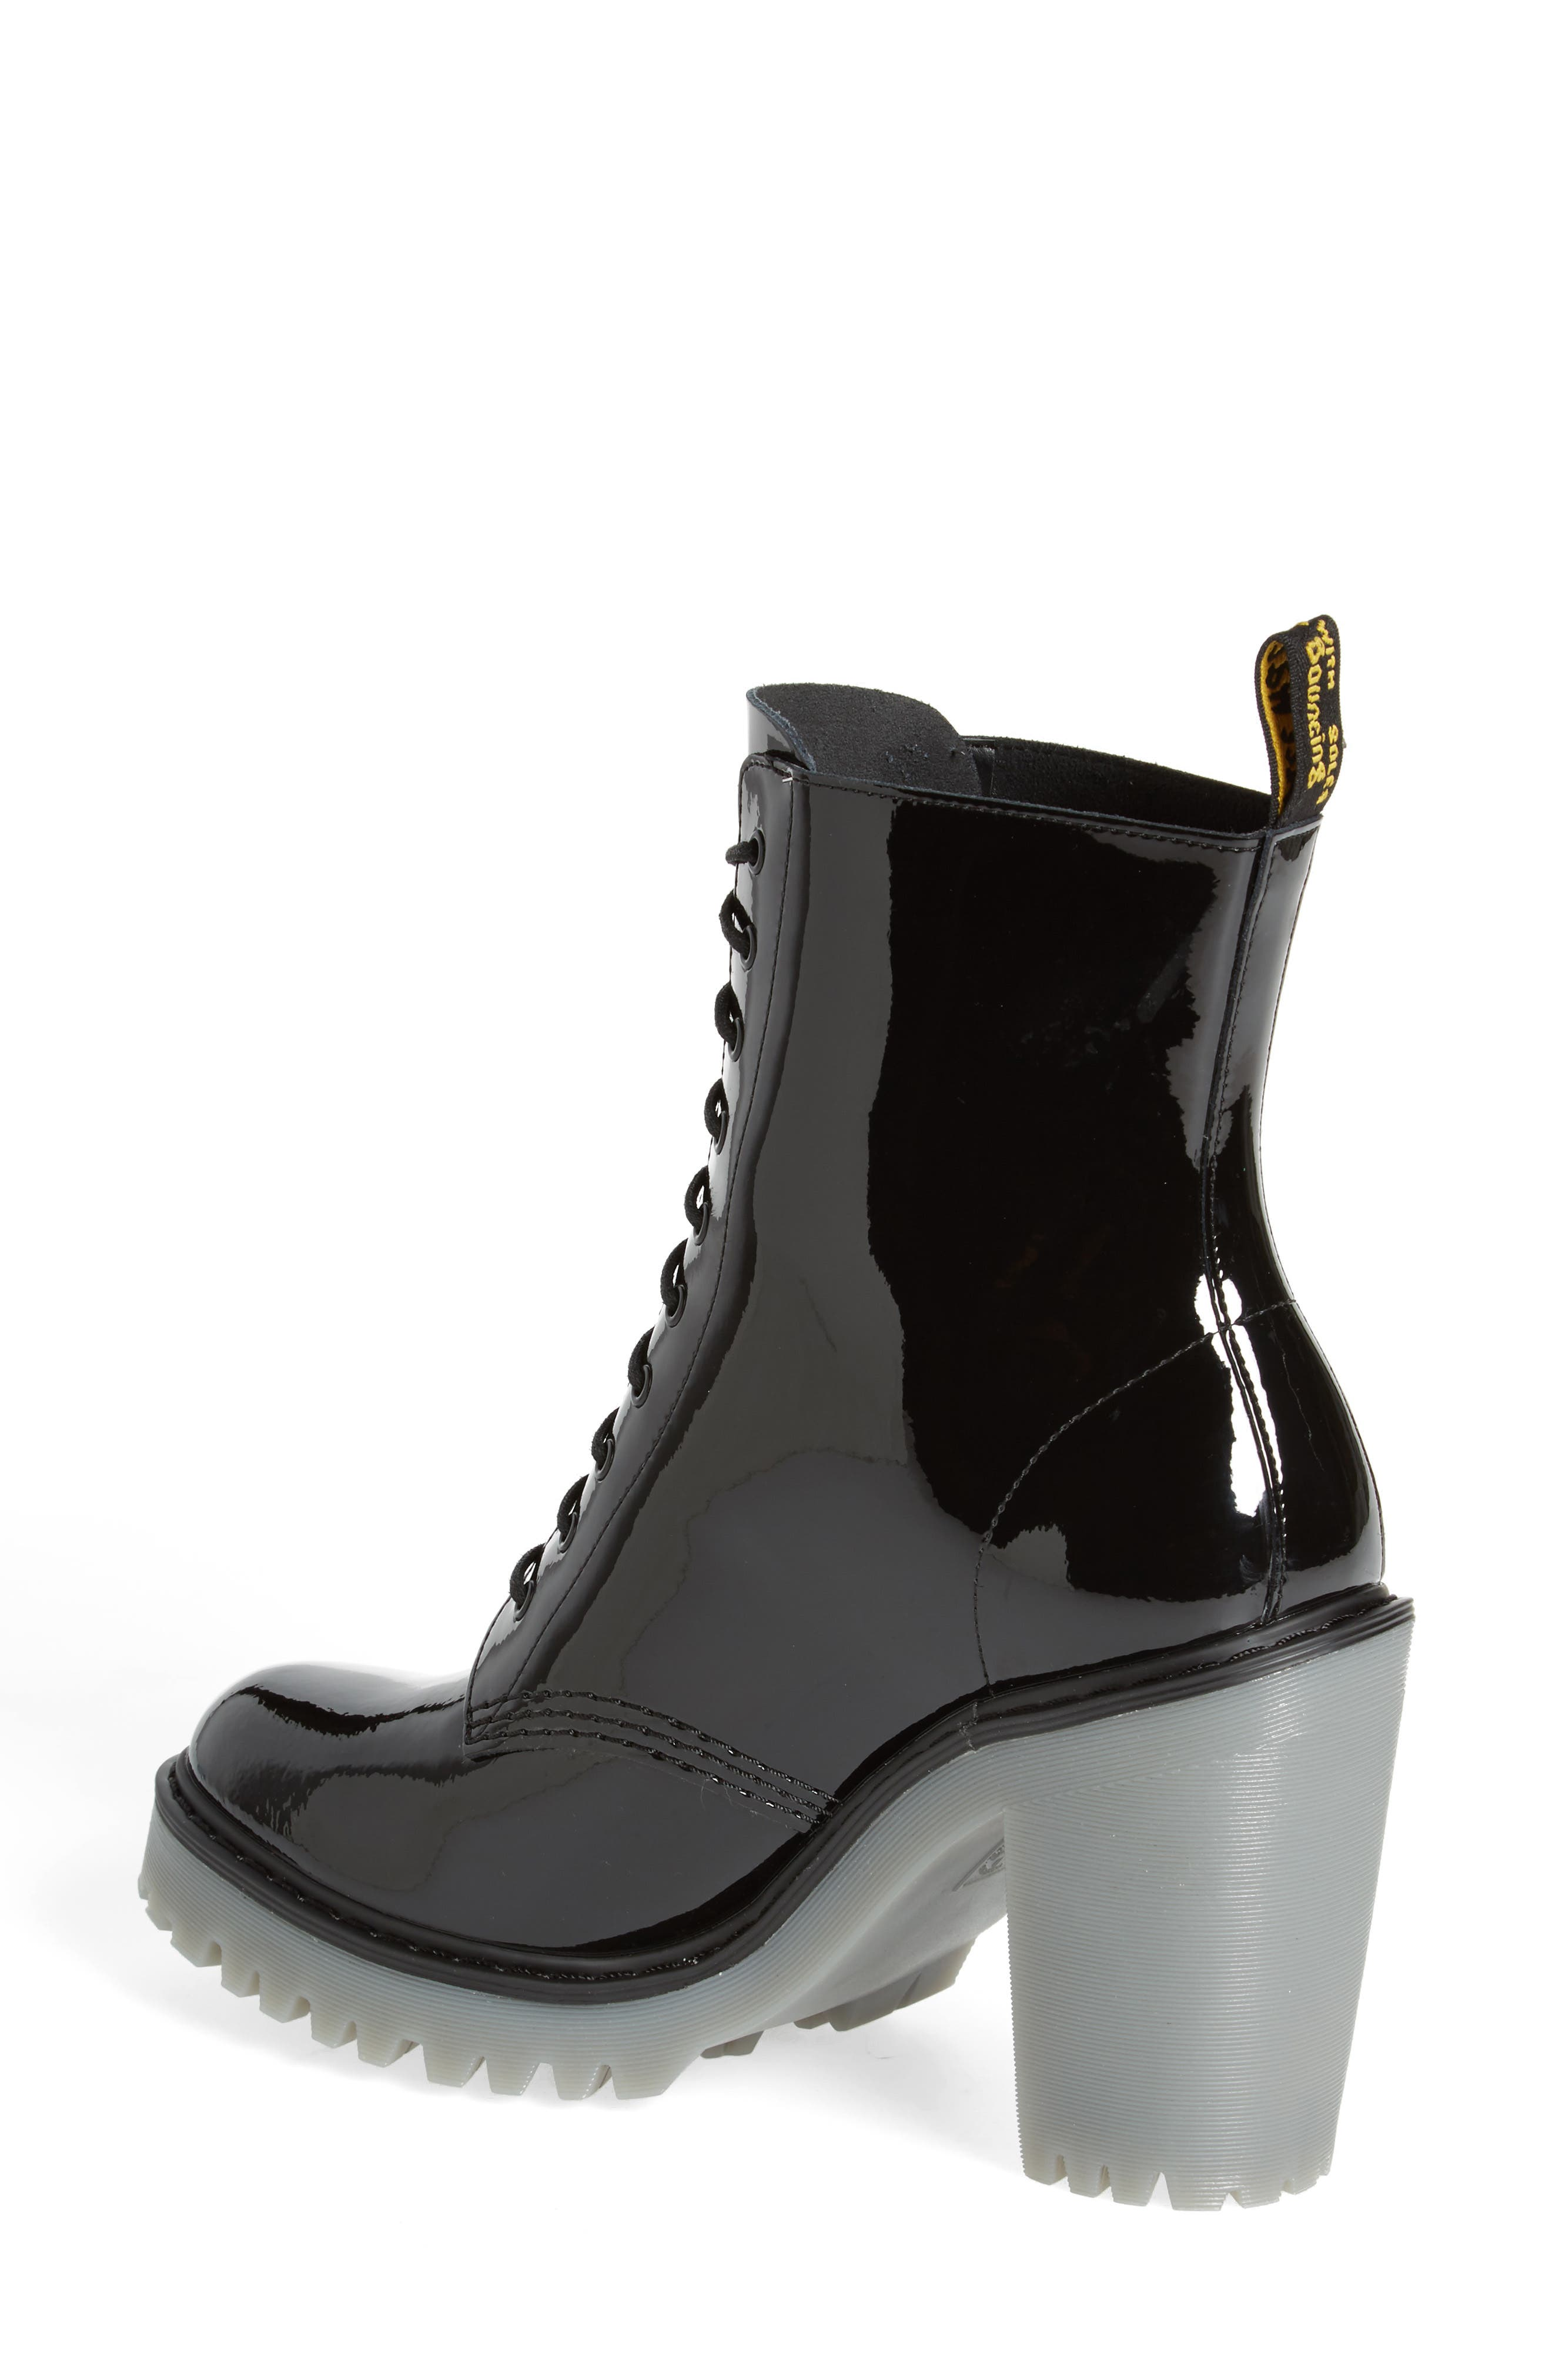 Kendra Heeled Bootie,                             Alternate thumbnail 2, color,                             Black Patent Leather